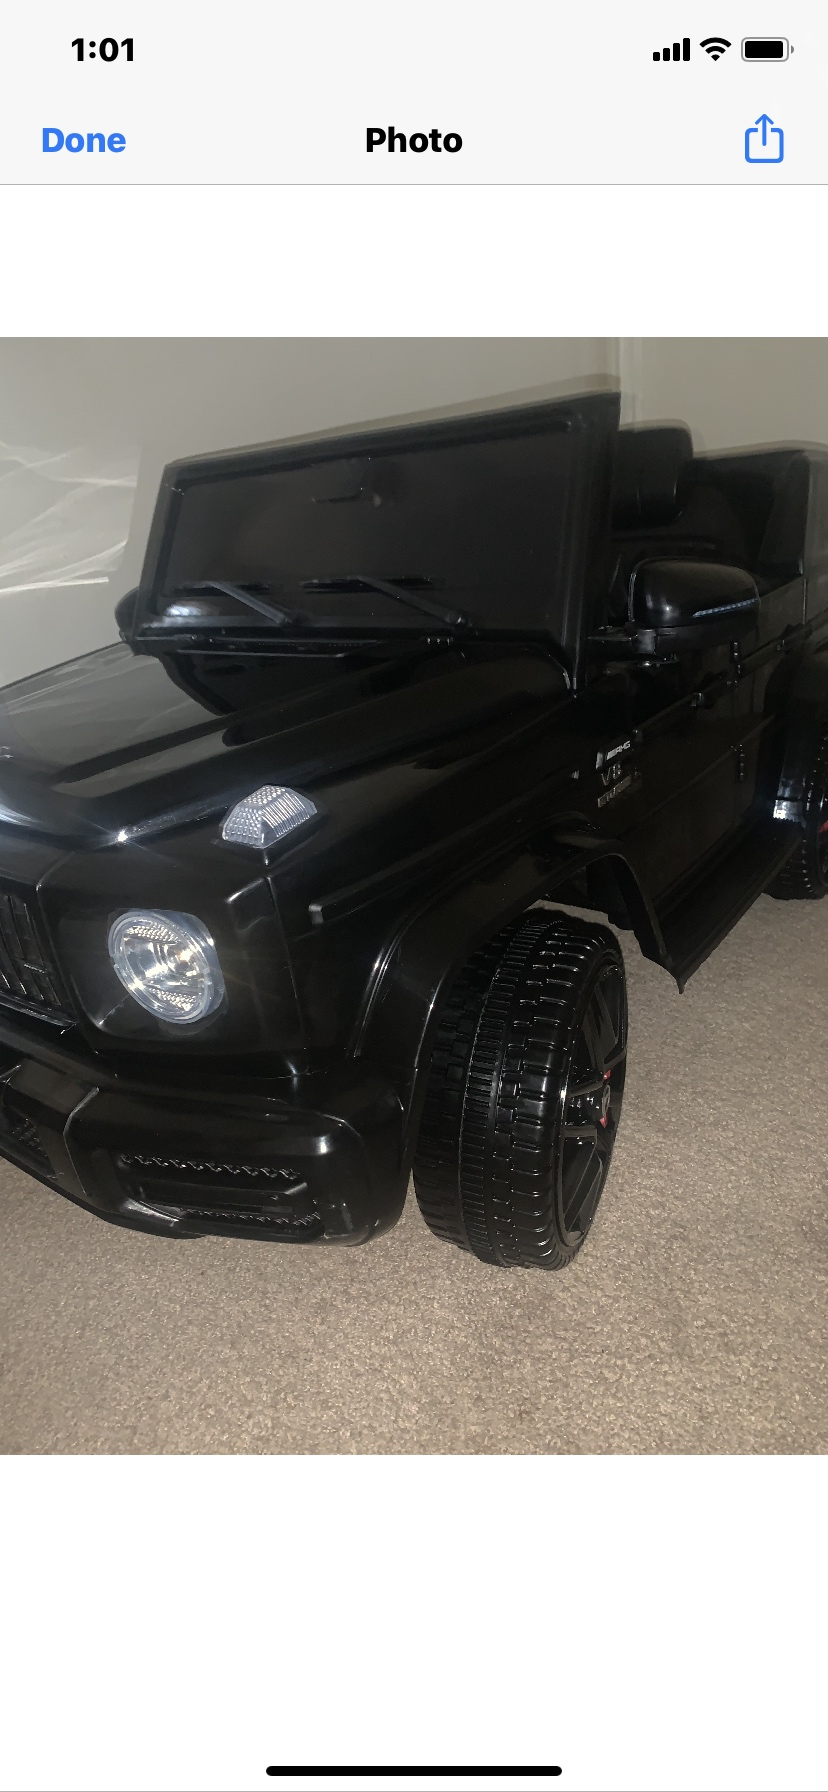 12V Mercedes-Benz AMG G63 Kids Ride On Cars Toys with Remote Control, Black photo review